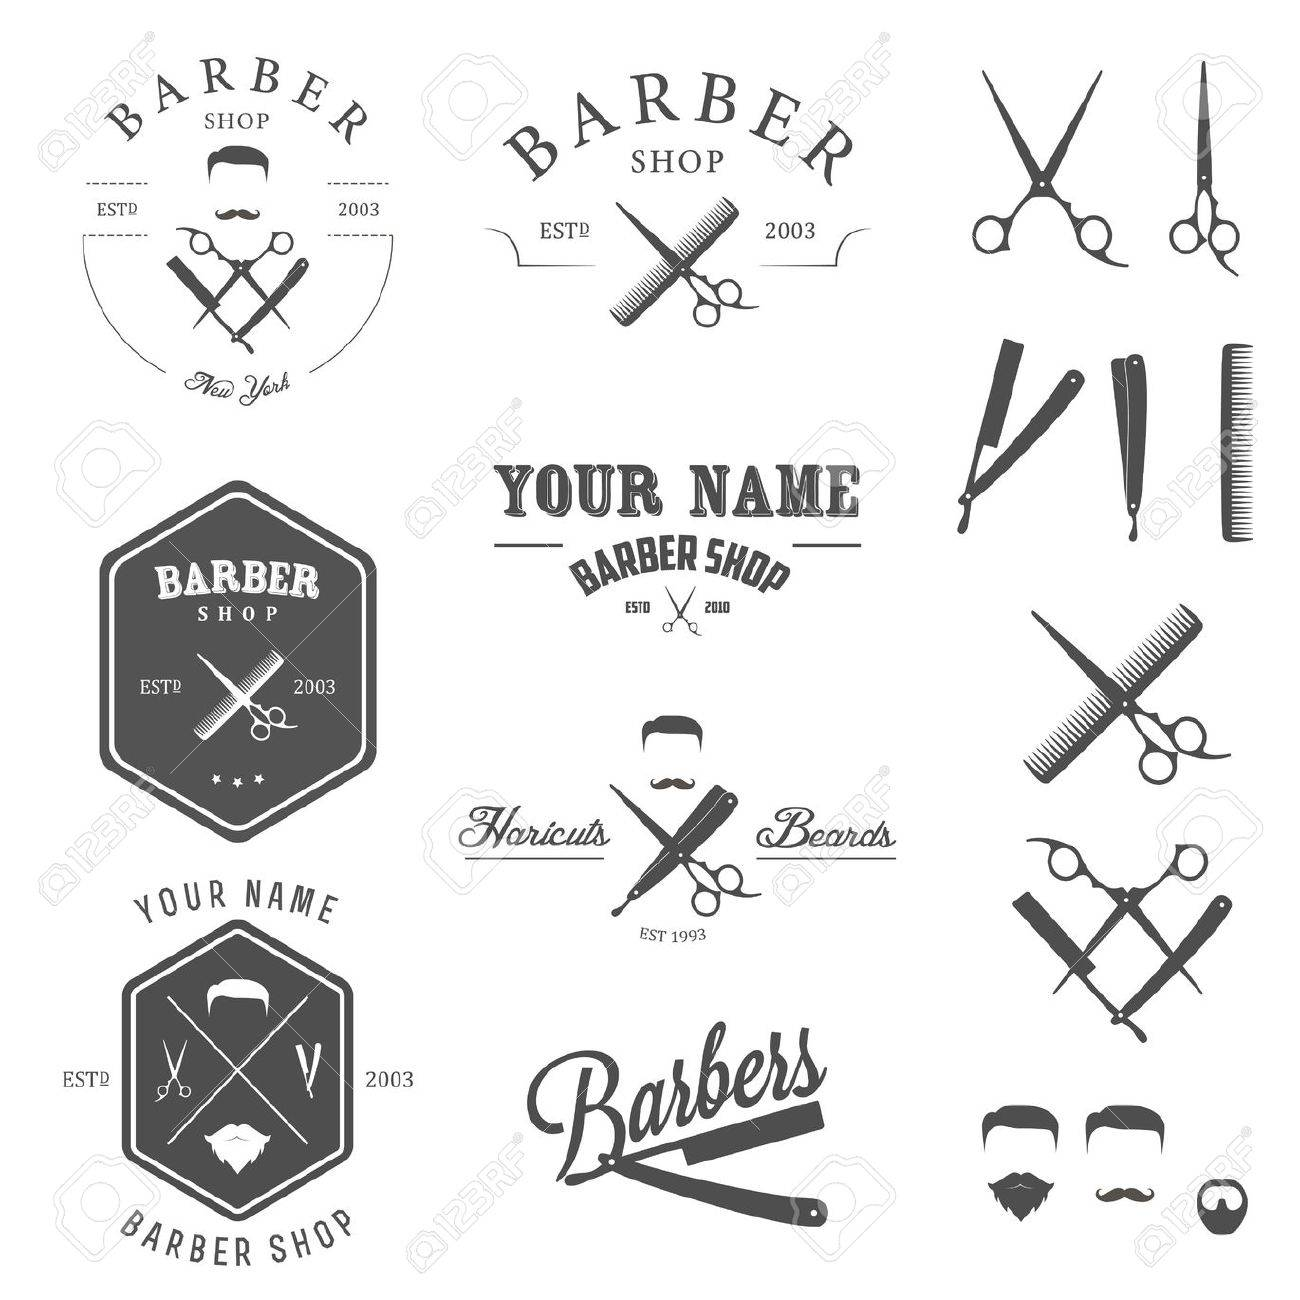 Clip art vector of vintage barber shop logo graphics and icon vector - Vector Similar Images Add To Likebox Barber Set Of Vintage Barber Shop Labels Badges And Design Elements